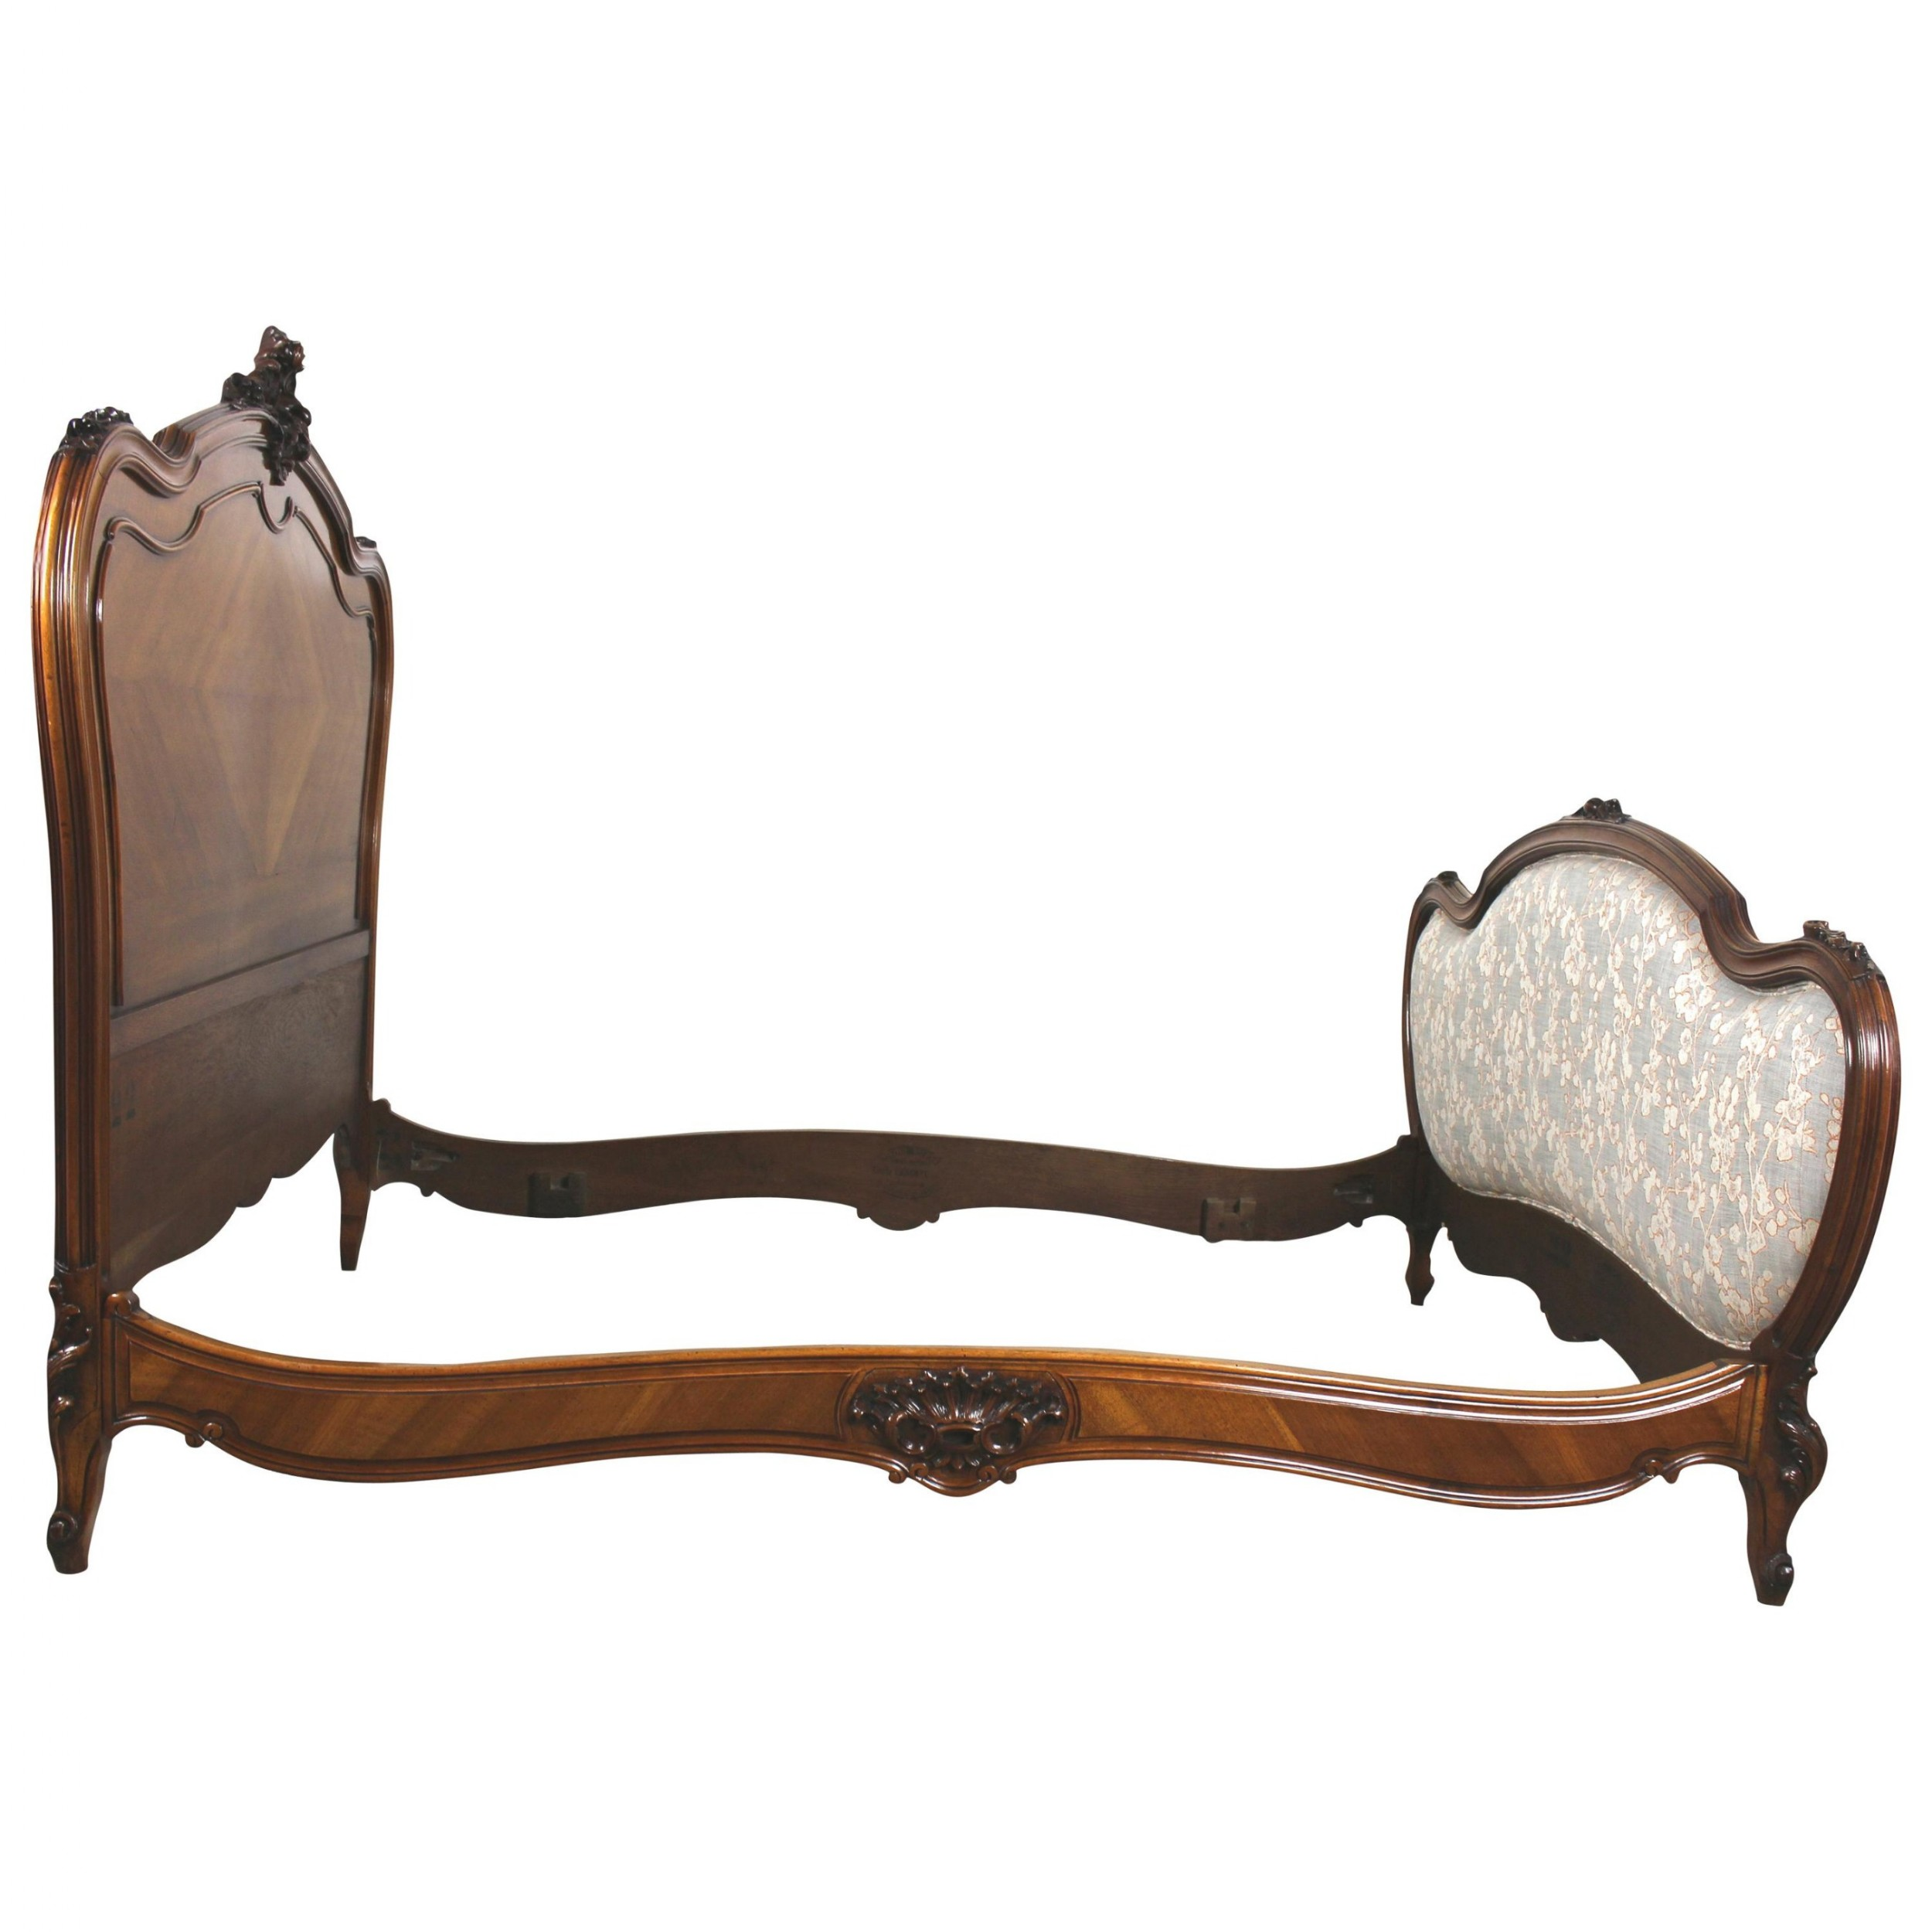 19th century french carved walnut framed bed